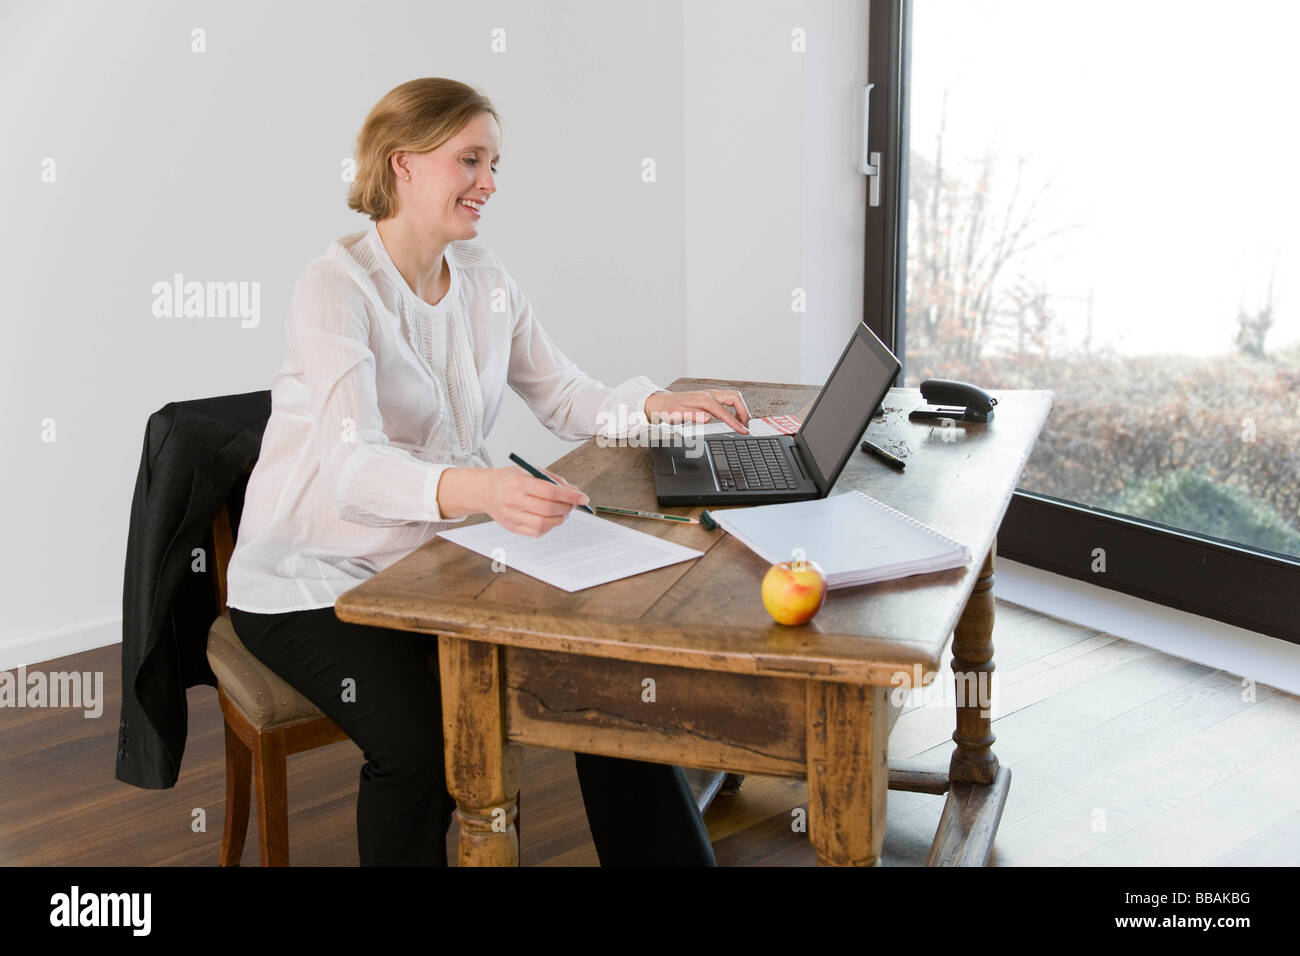 pregnant woman working in home office - Stock Image